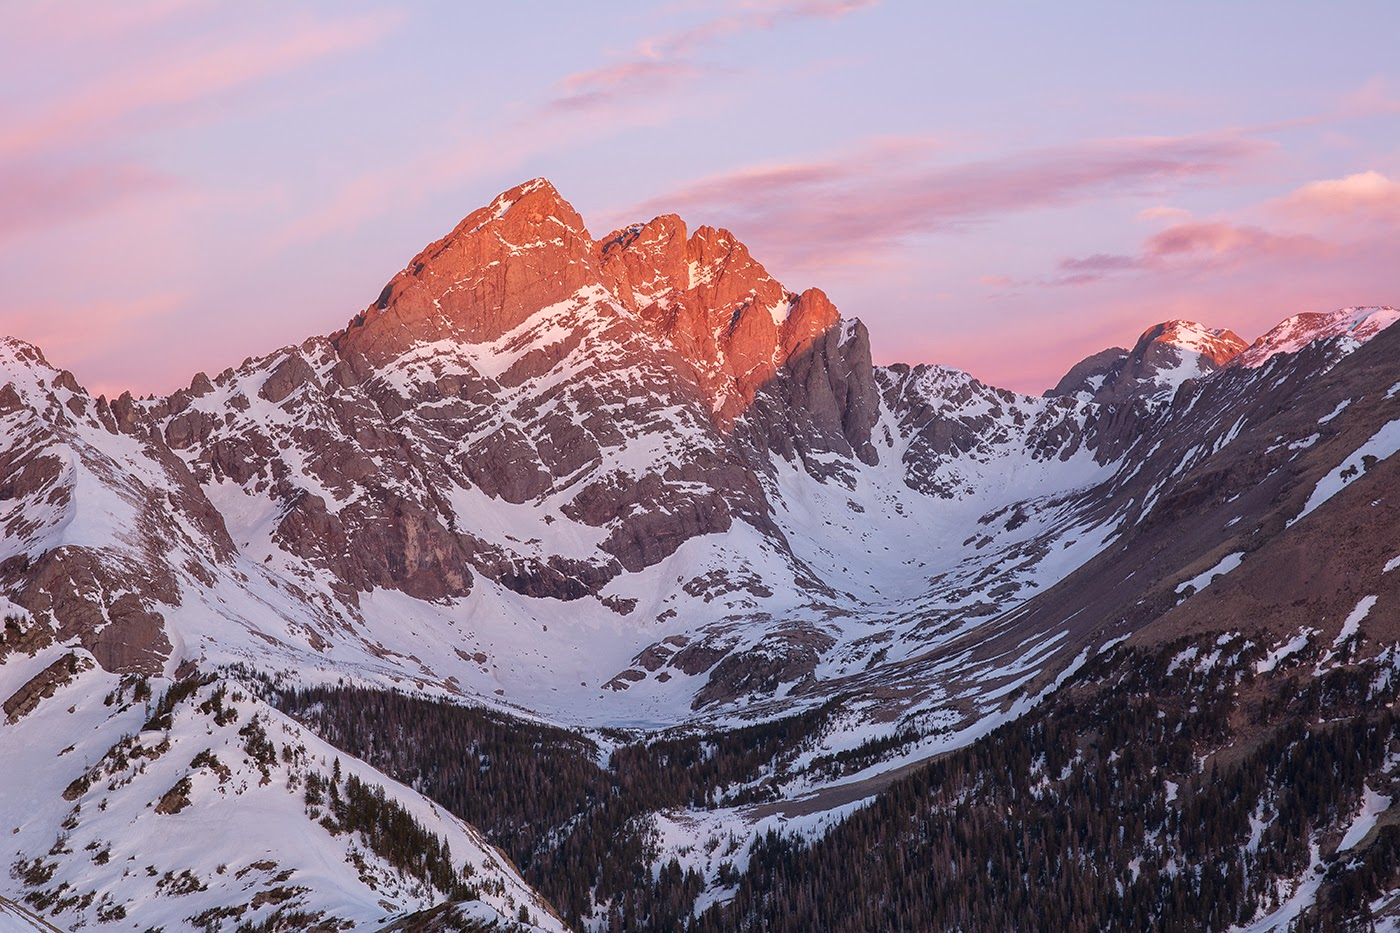 The Crestone Peak and Needle at sunrise from Marble Mountain in early Spring photography by Aaron Spong